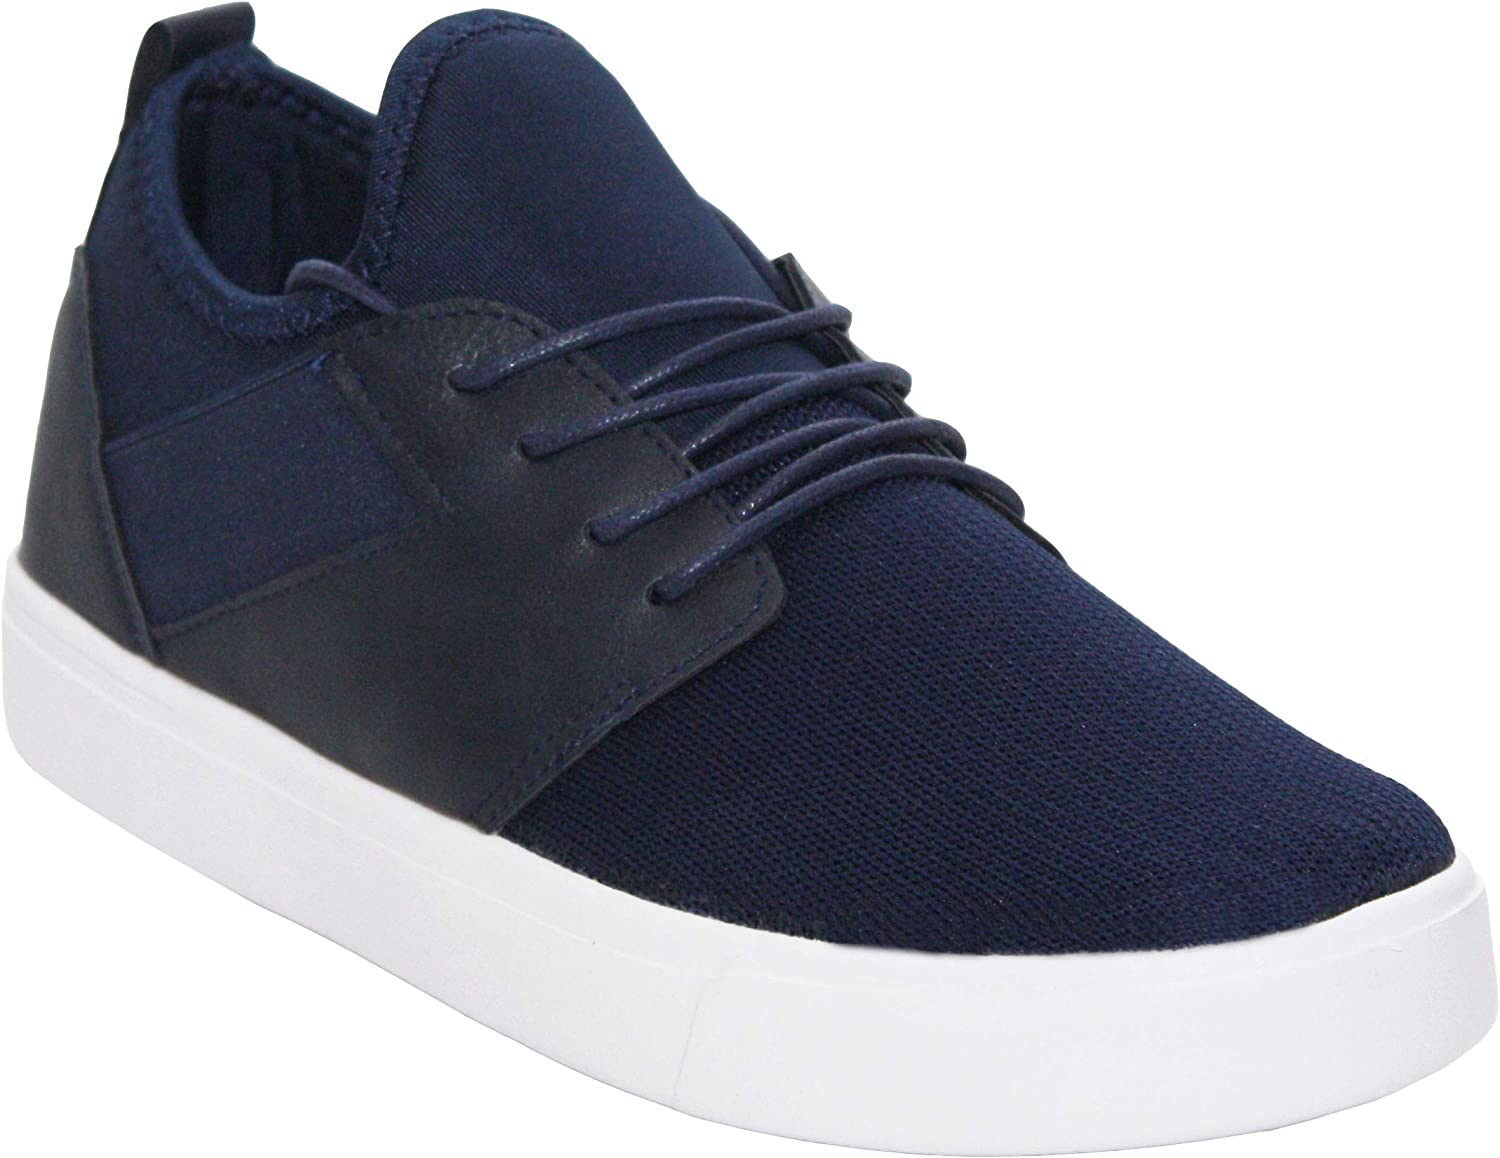 A&H Footwear. Mens Air Tech Lace up Running Fitness Sports Gym Sneakers Trainers Shoes Sizes UK 7-12 Navy